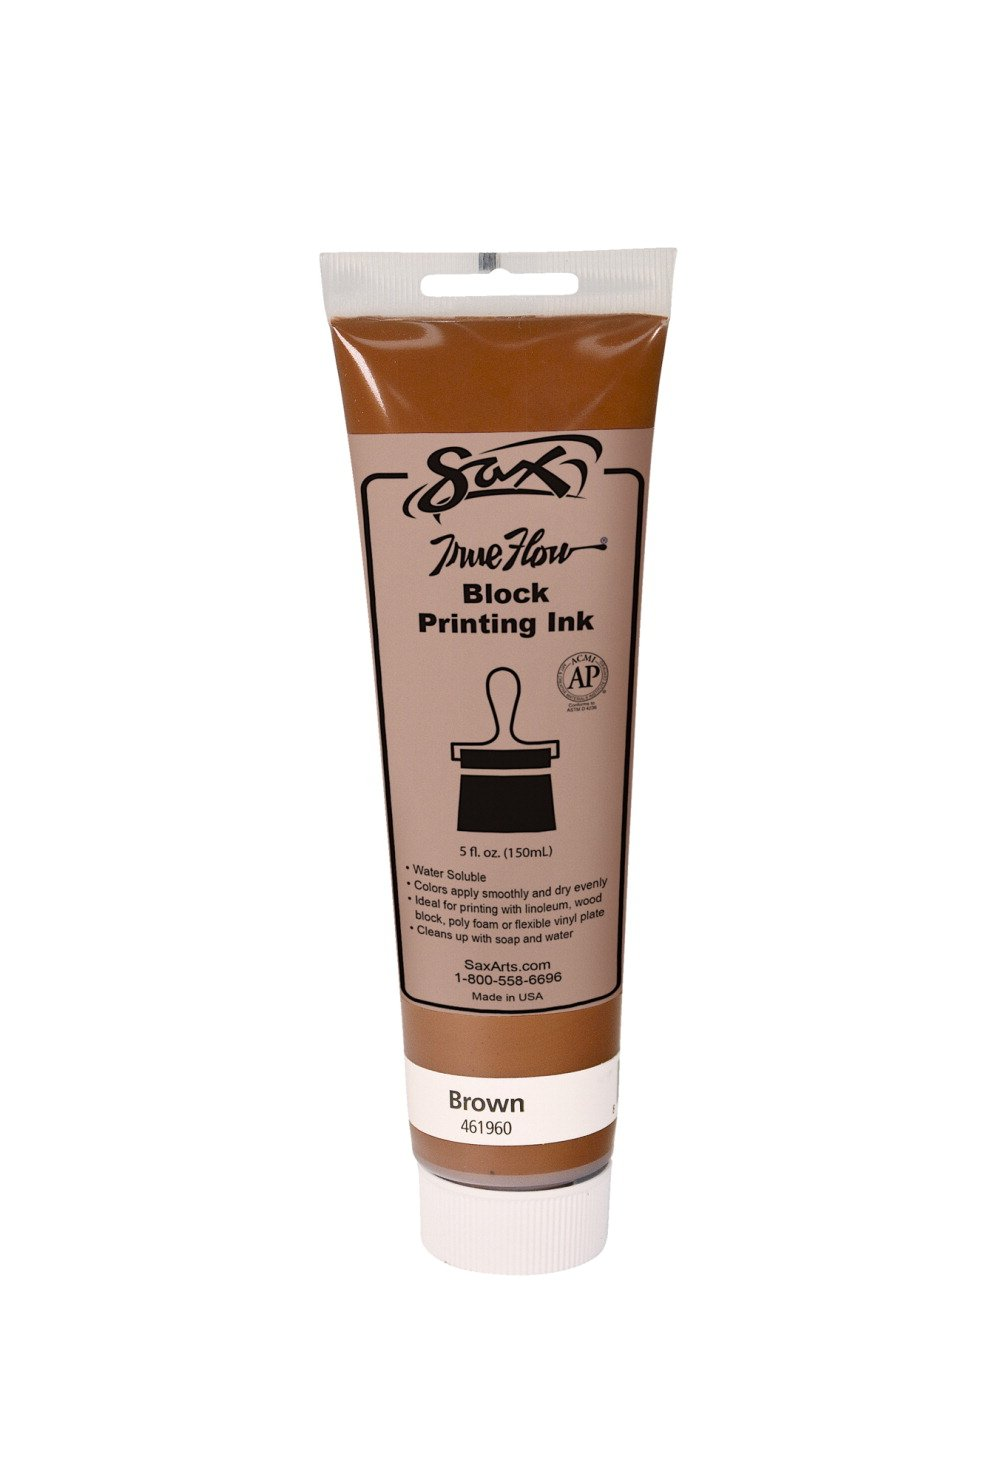 Sax True Flow Water Soluble Block Printing Ink - 5 Ounce Tube - Brown by Sax (Image #1)